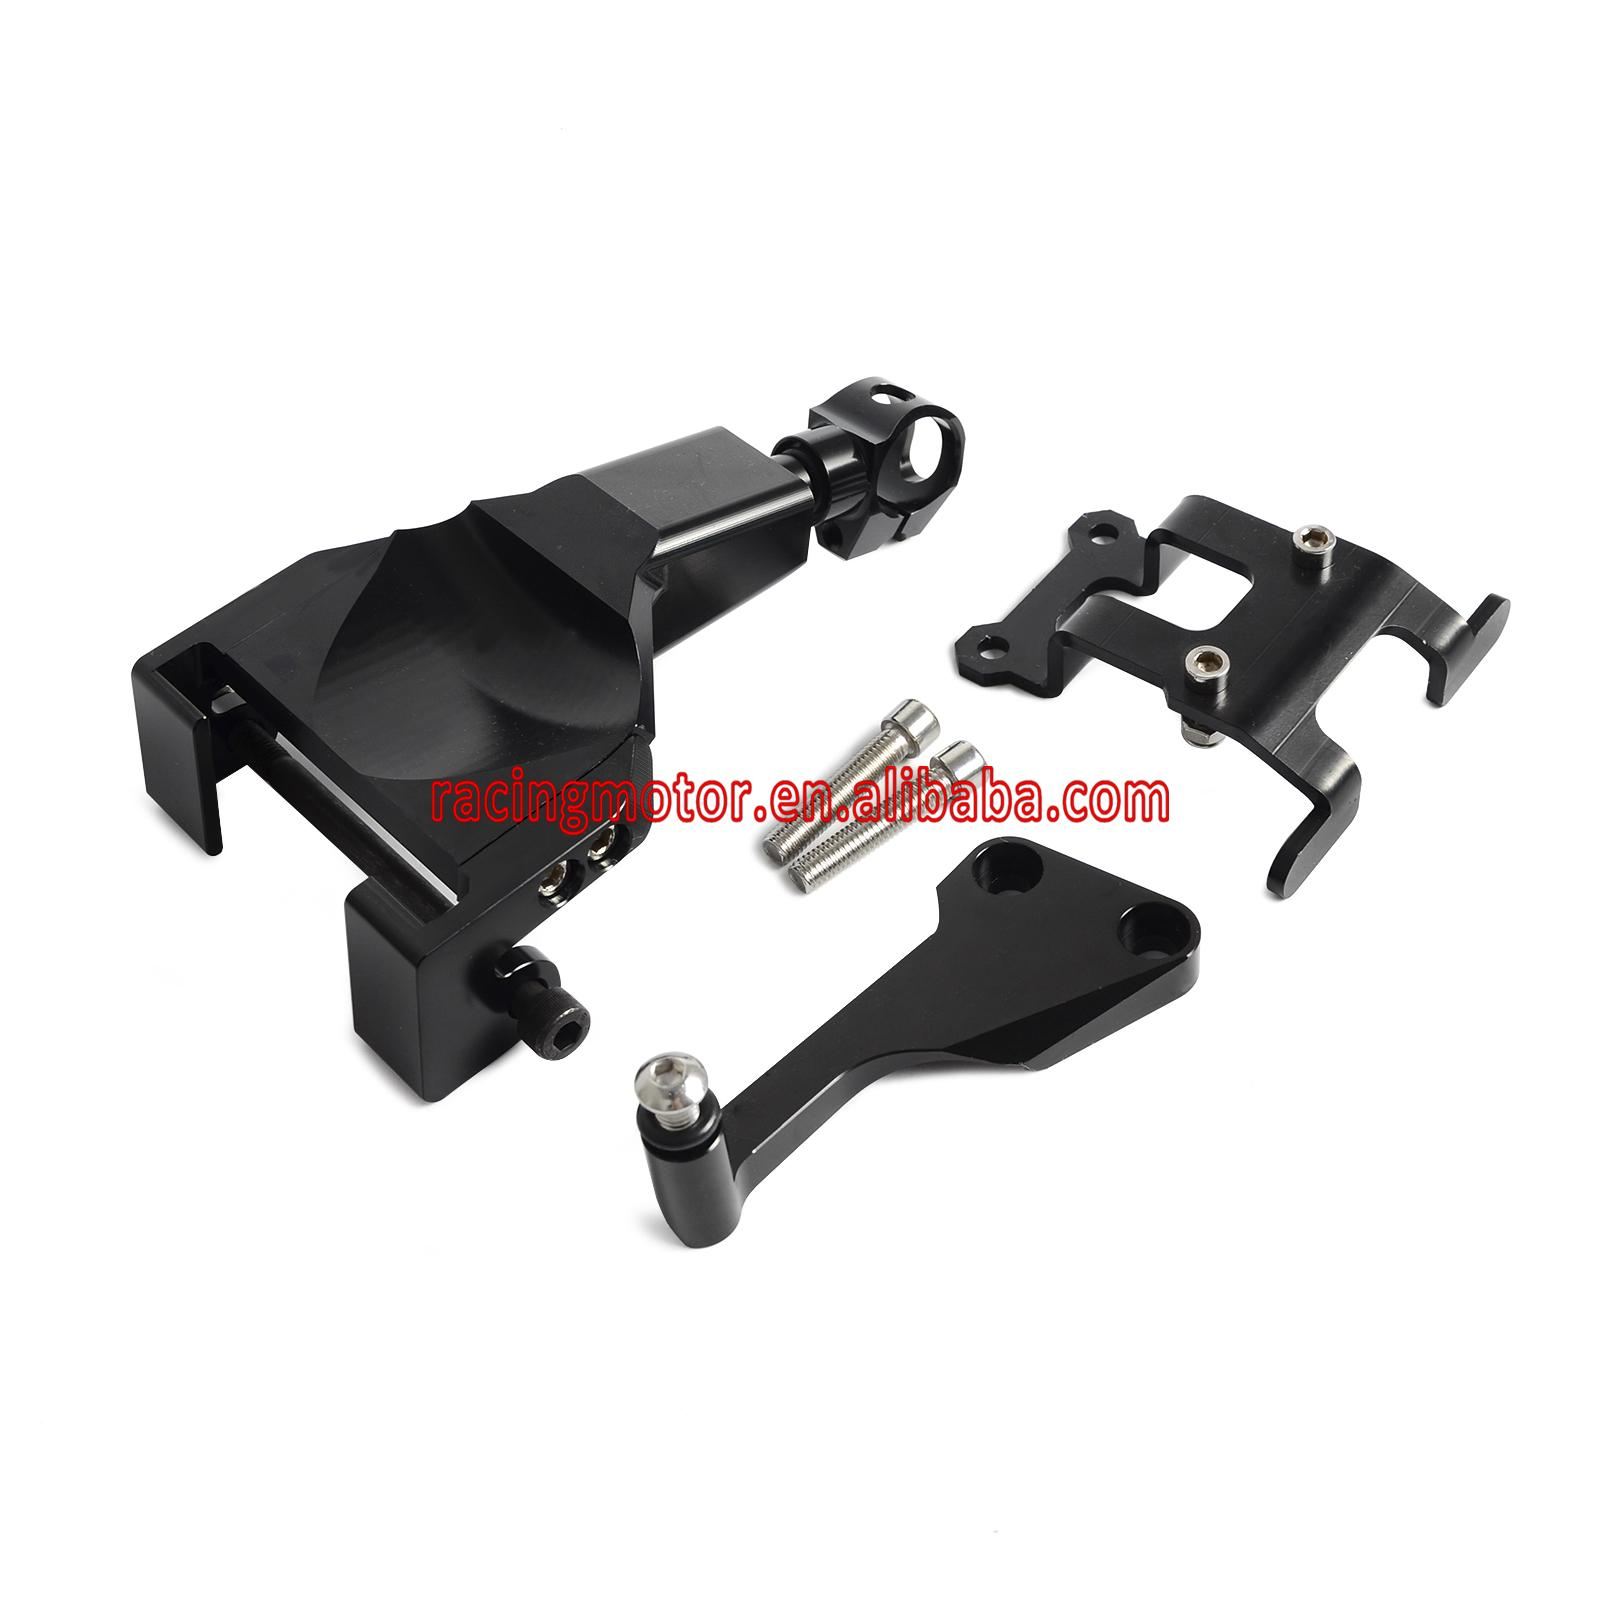 ФОТО Black Motorcycle Stablizer Damper Mounting Bracket Kit For Yamaha MT-07 MT07 MOTO CAGE 2014 2015 2016